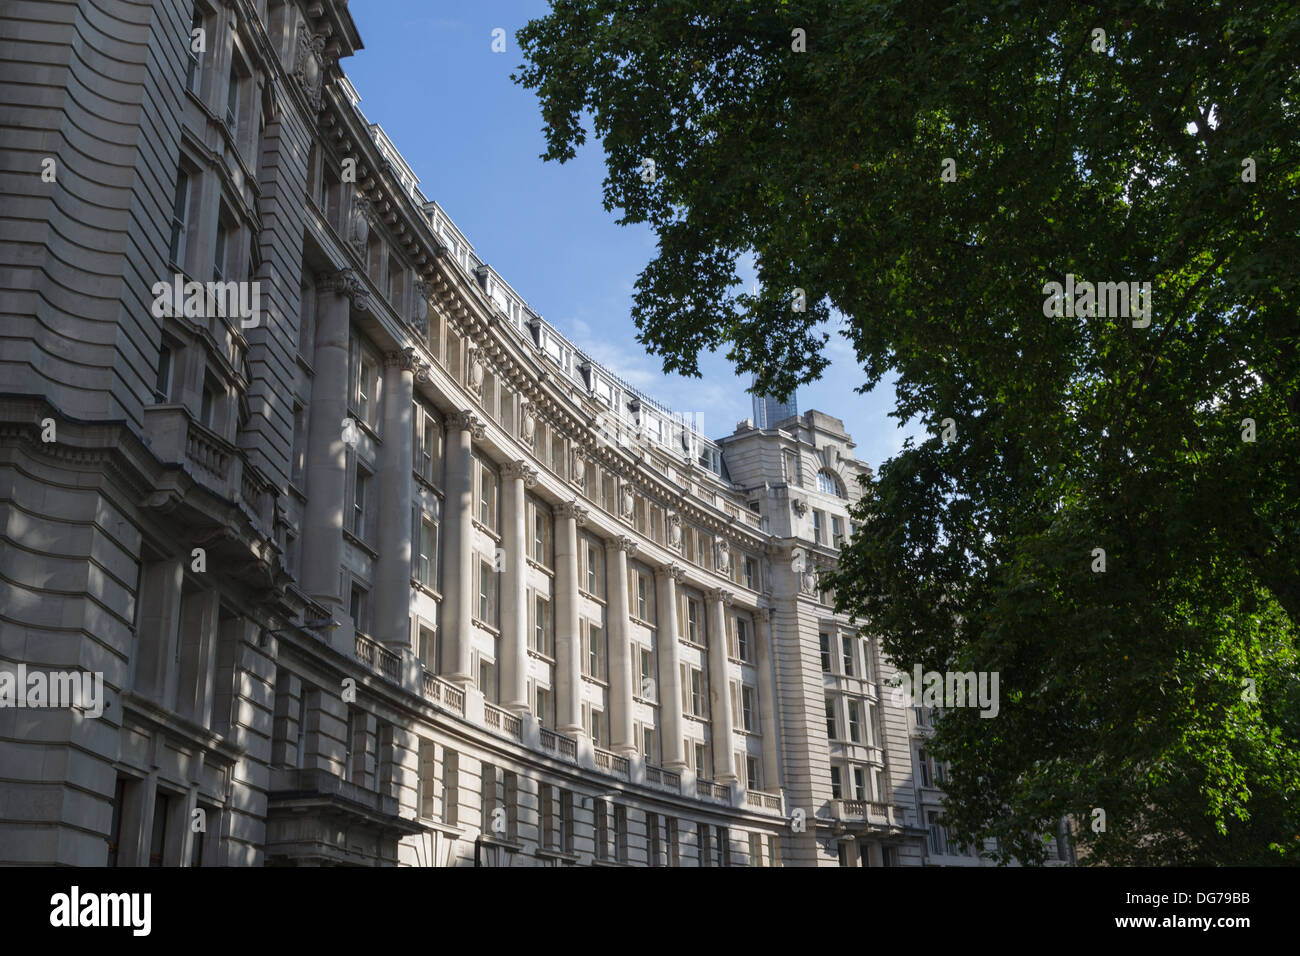 The curve of a typical classical architecture style building in Finsbury Circus, London, UK - Stock Image